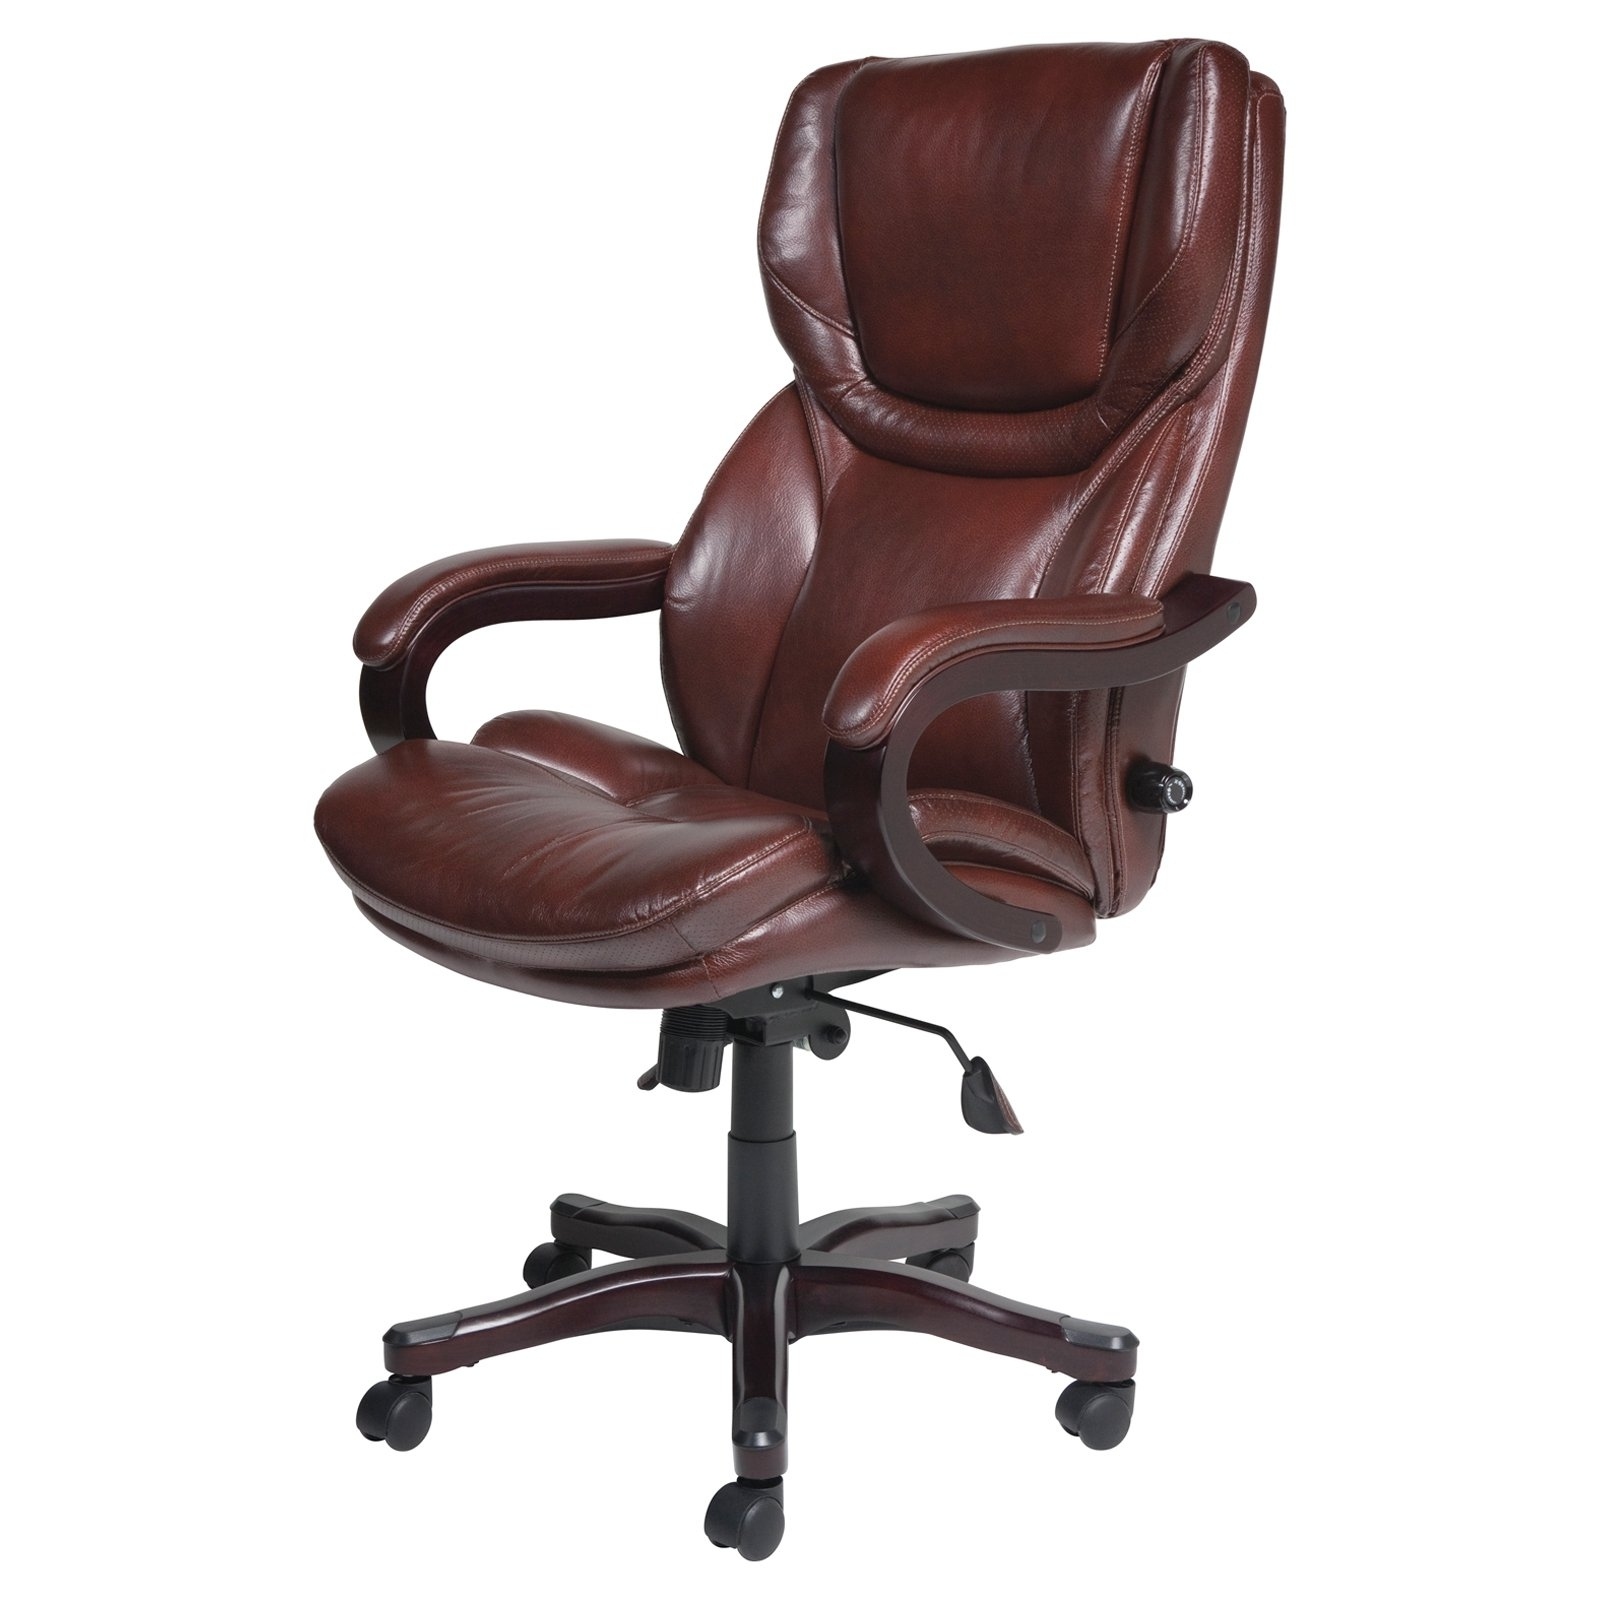 Favorite Essentialsofm Ess 6020 Executive Office Chair, Black With With Executive Office Chairs With Headrest (View 20 of 20)